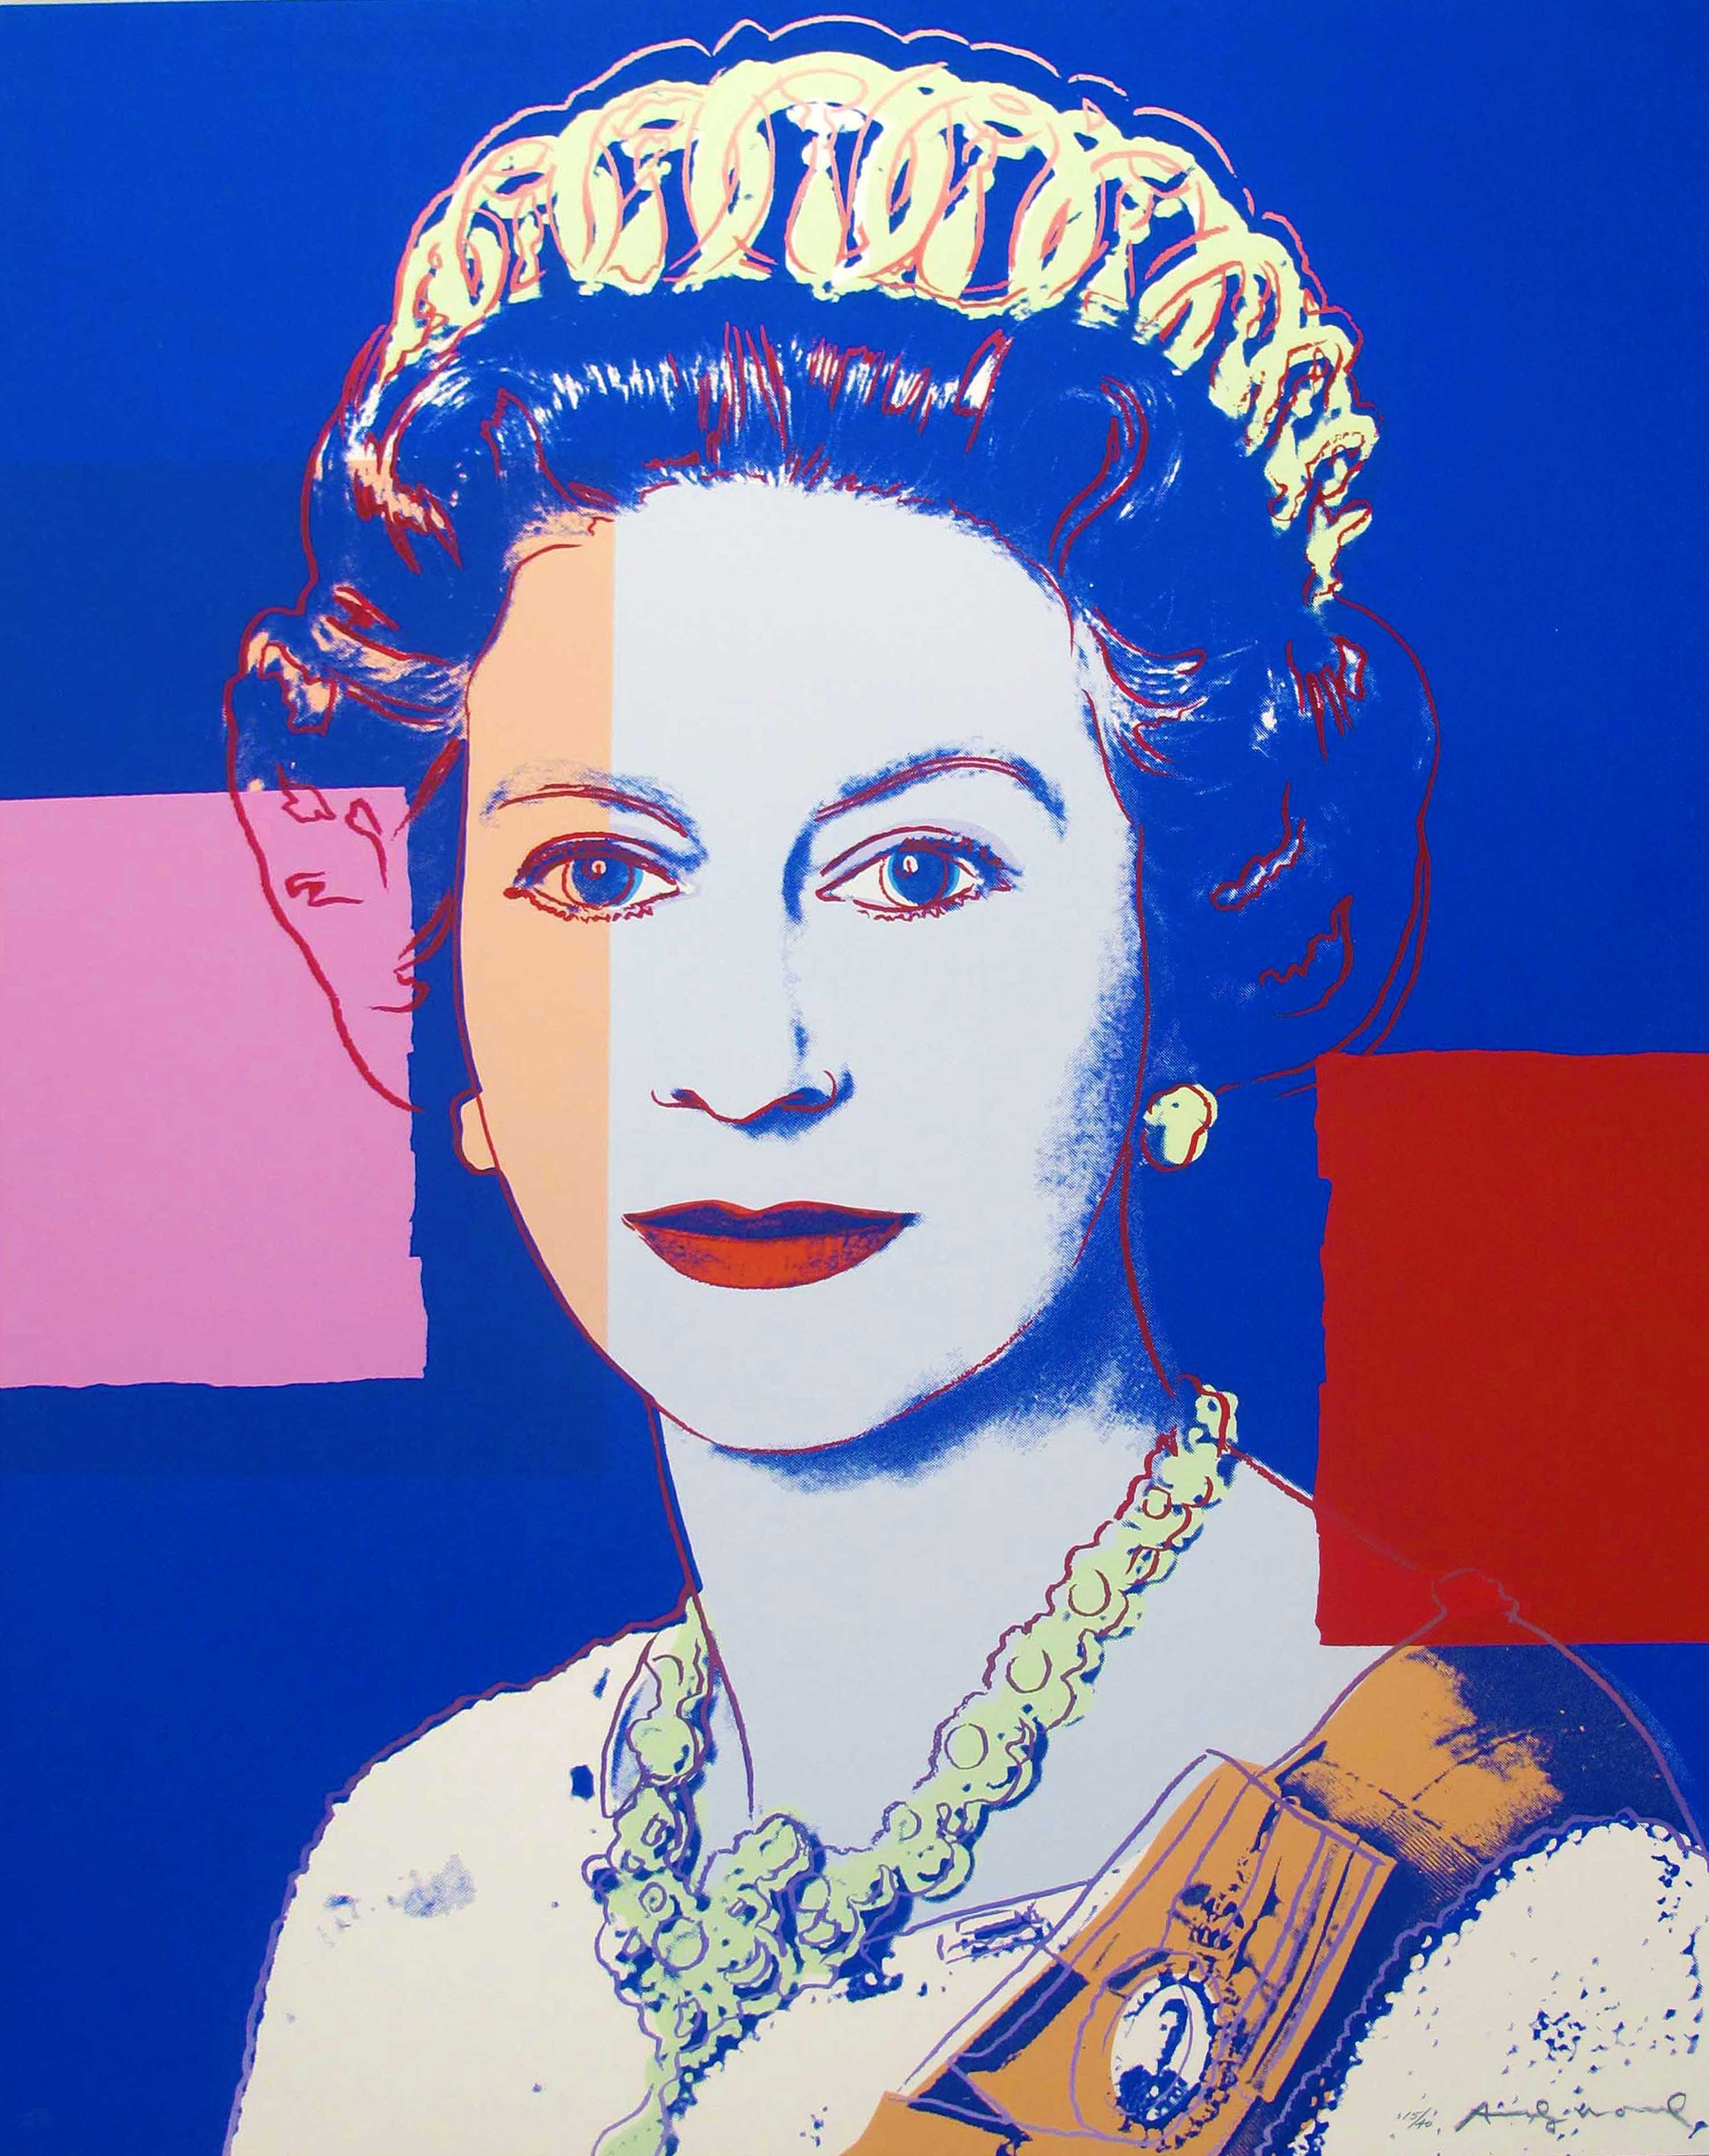 Andy Warhol | Reigning Queens | Queen Elizabeth II Of The United Kingdom 337 | 1985 | Image of Artists' work.